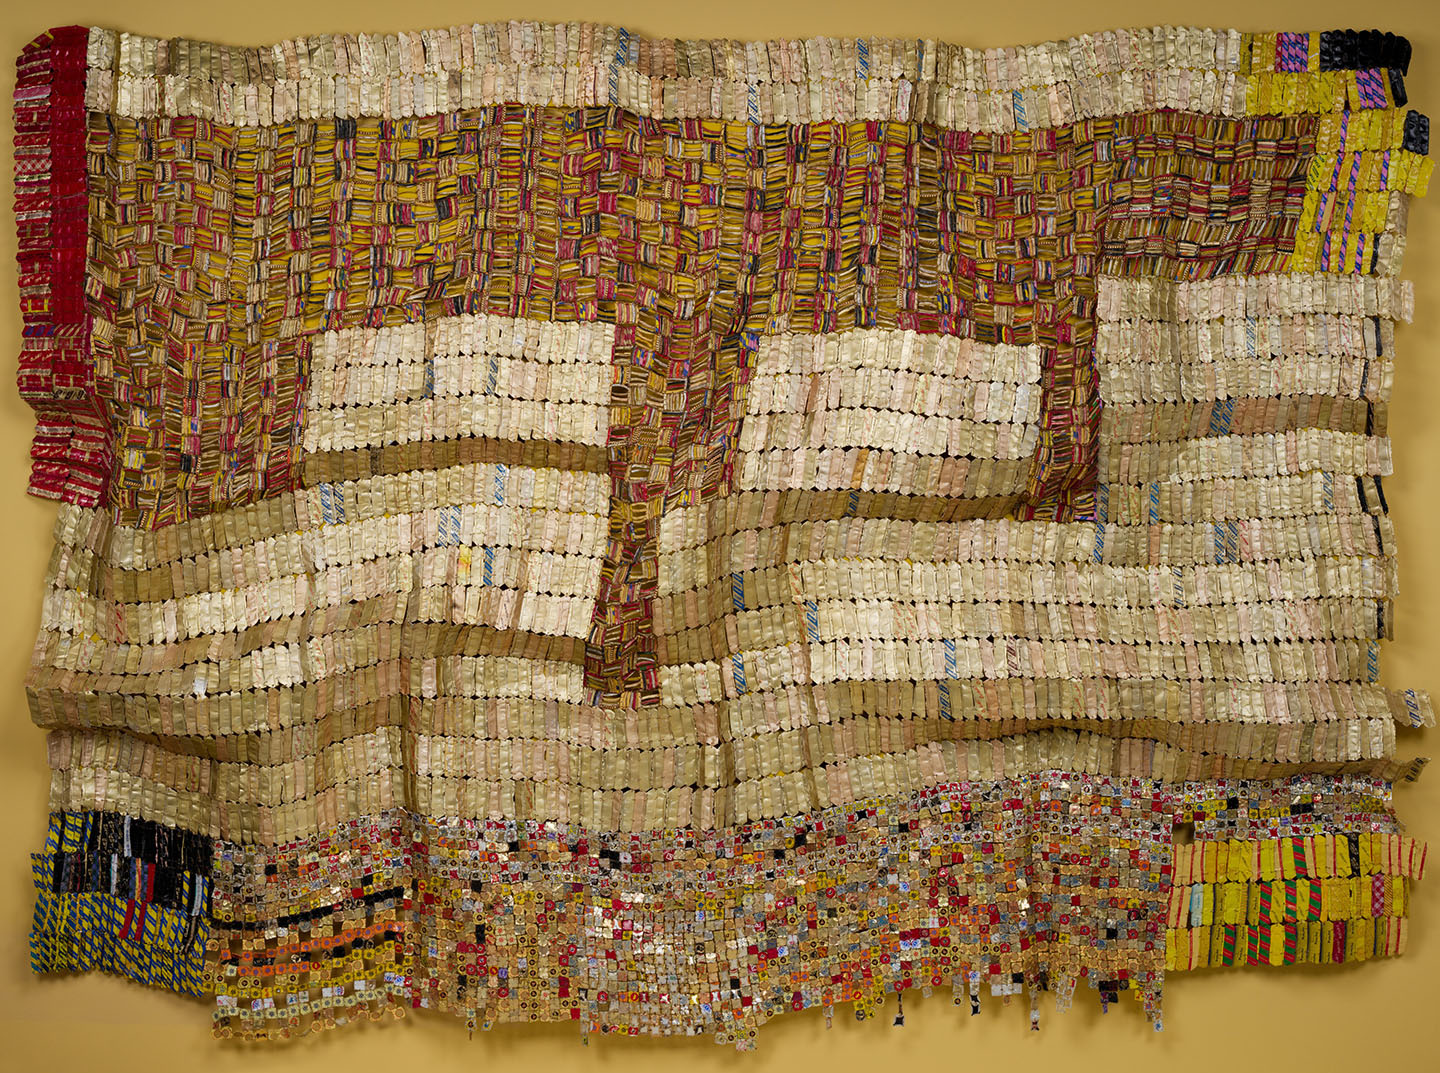 A huge coloful tapestry made of woven copper wire strung with found aluminum bottlecaps